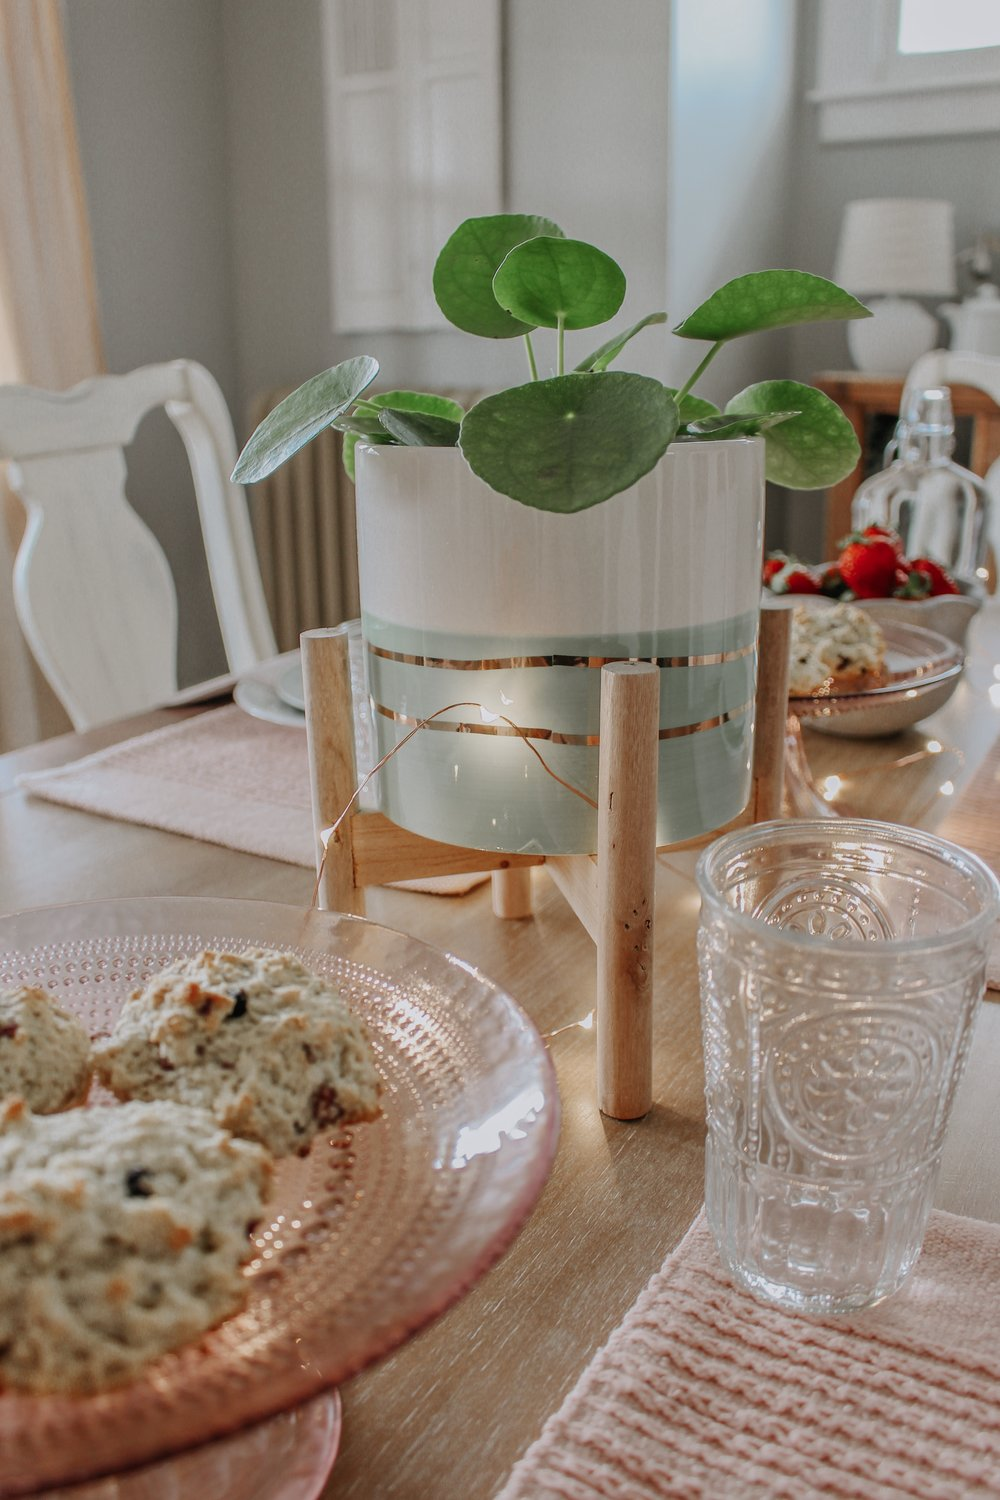 Food served at the spring tablescape